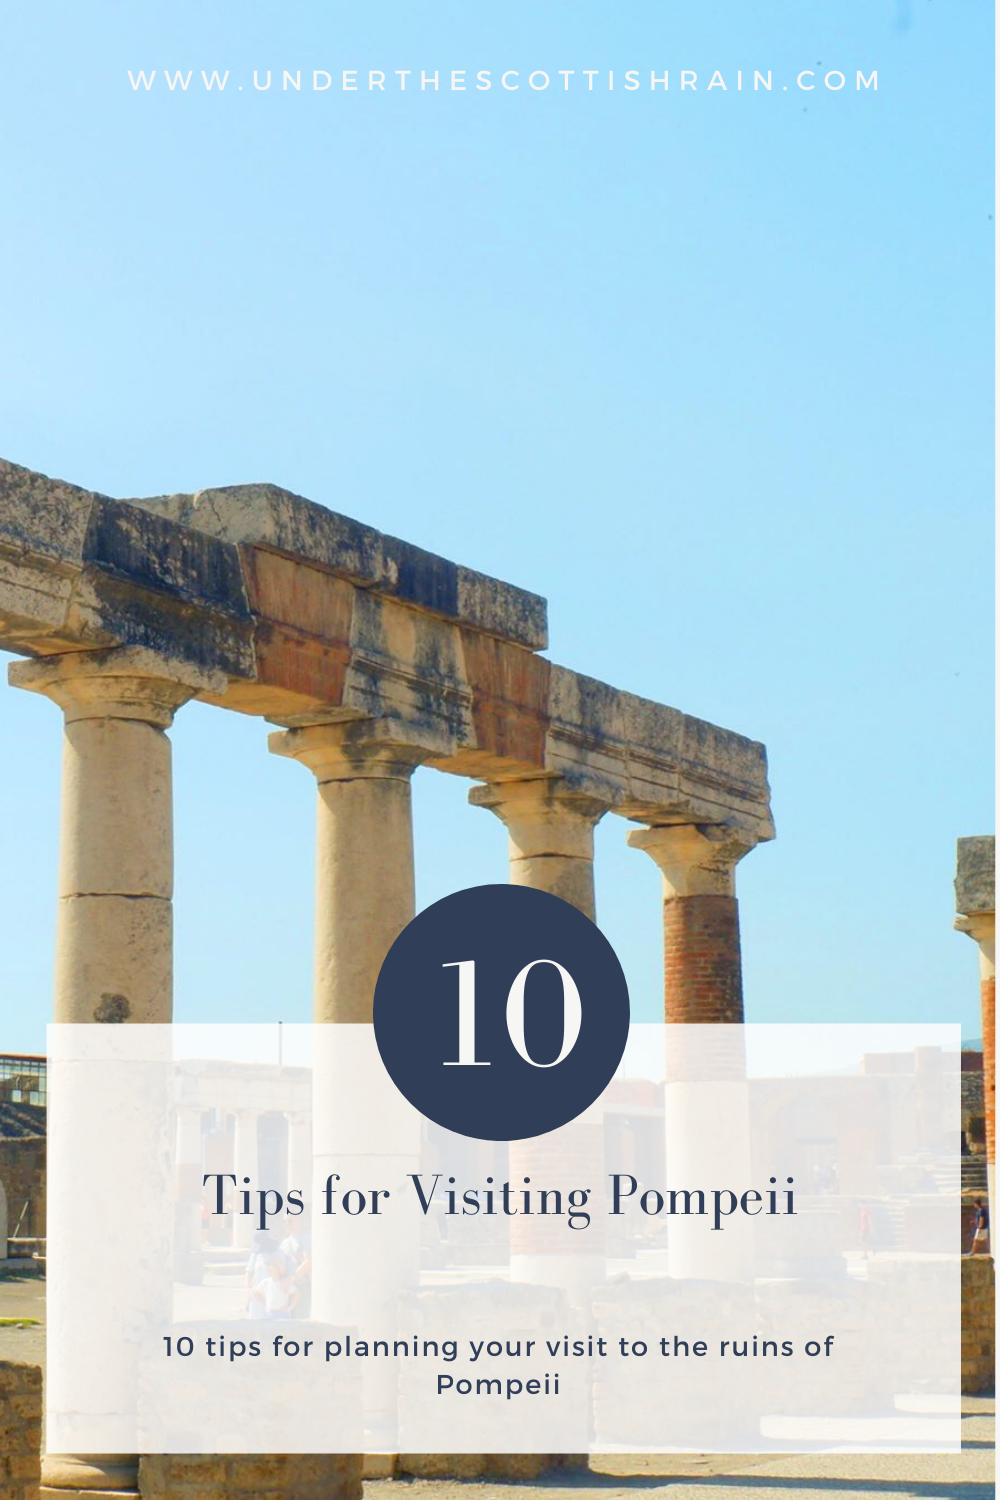 Pinterest pin for tips for visiting Pompeii